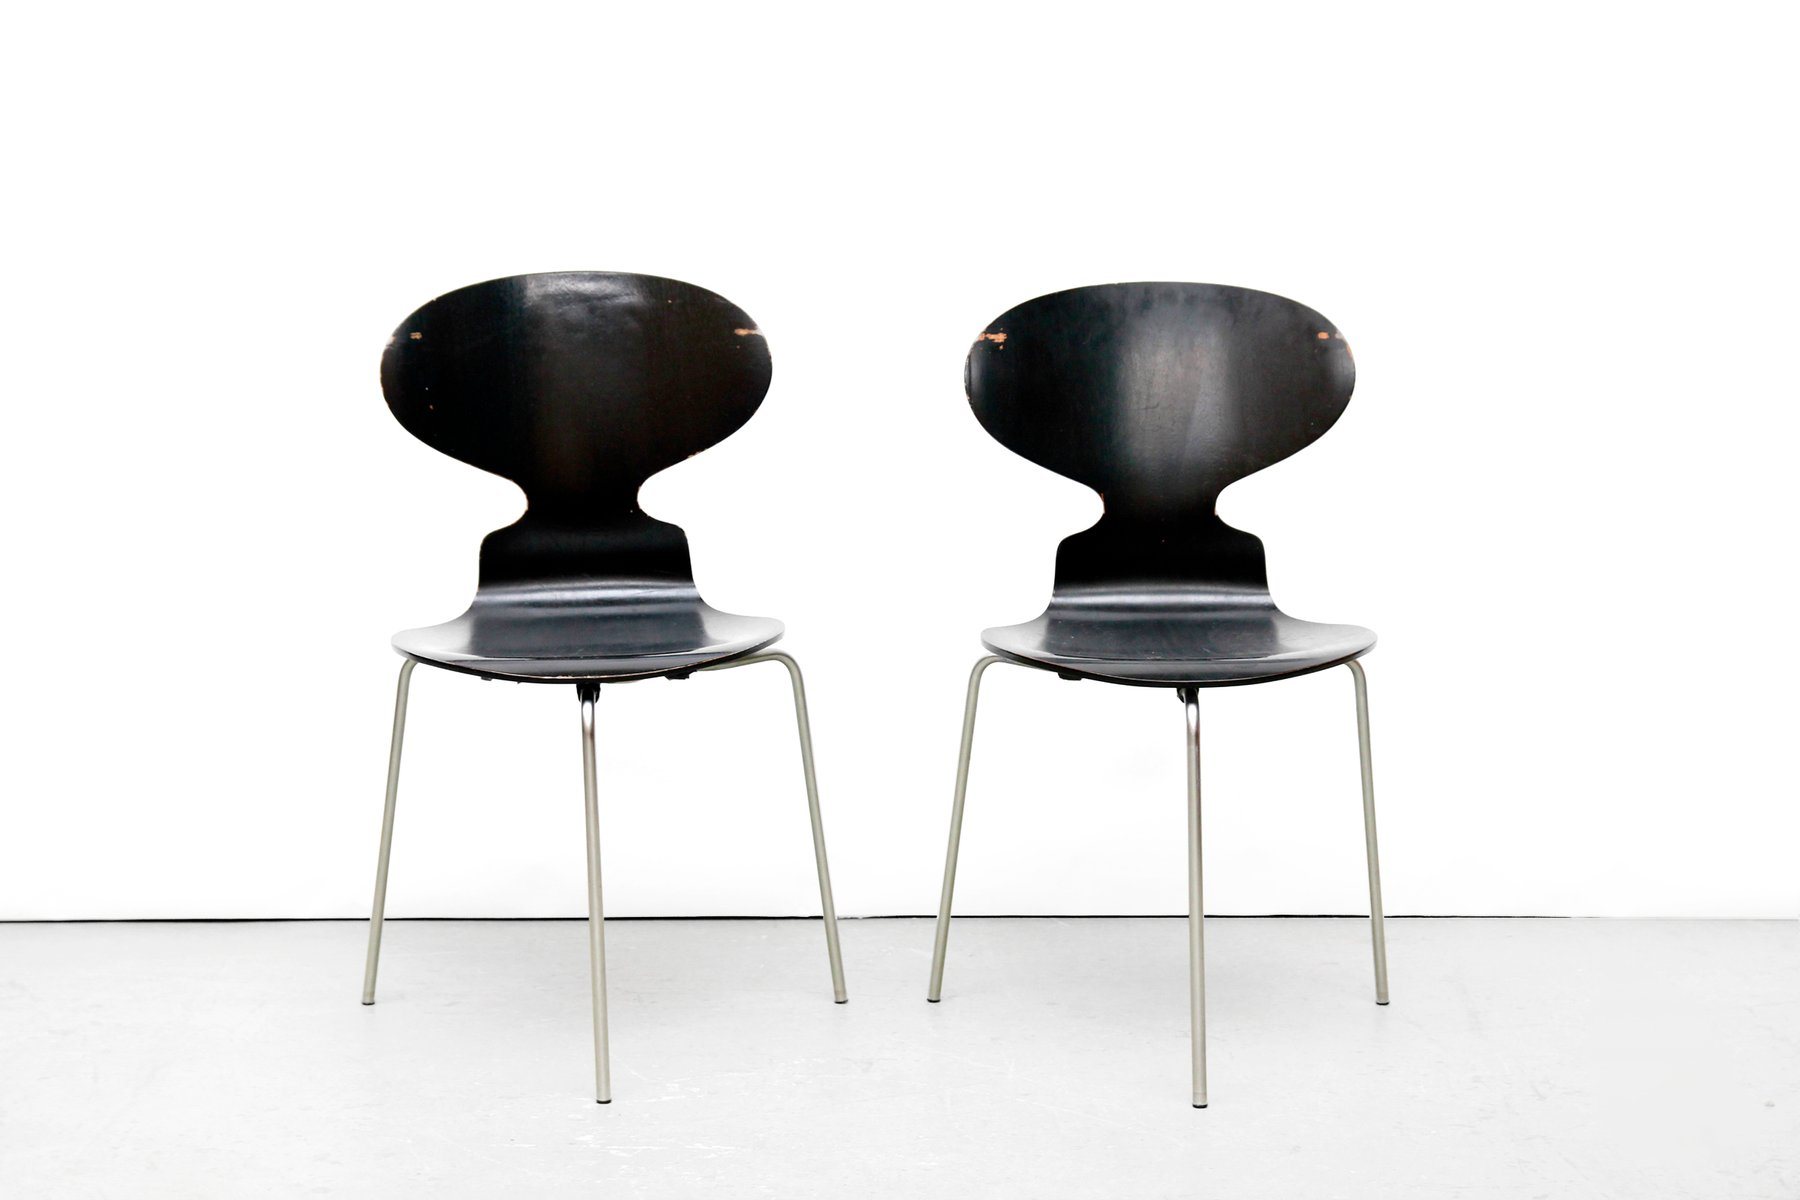 Model FH 3100 Ant Chairs by Arne Jacobsen for Fritz Hansen 1969